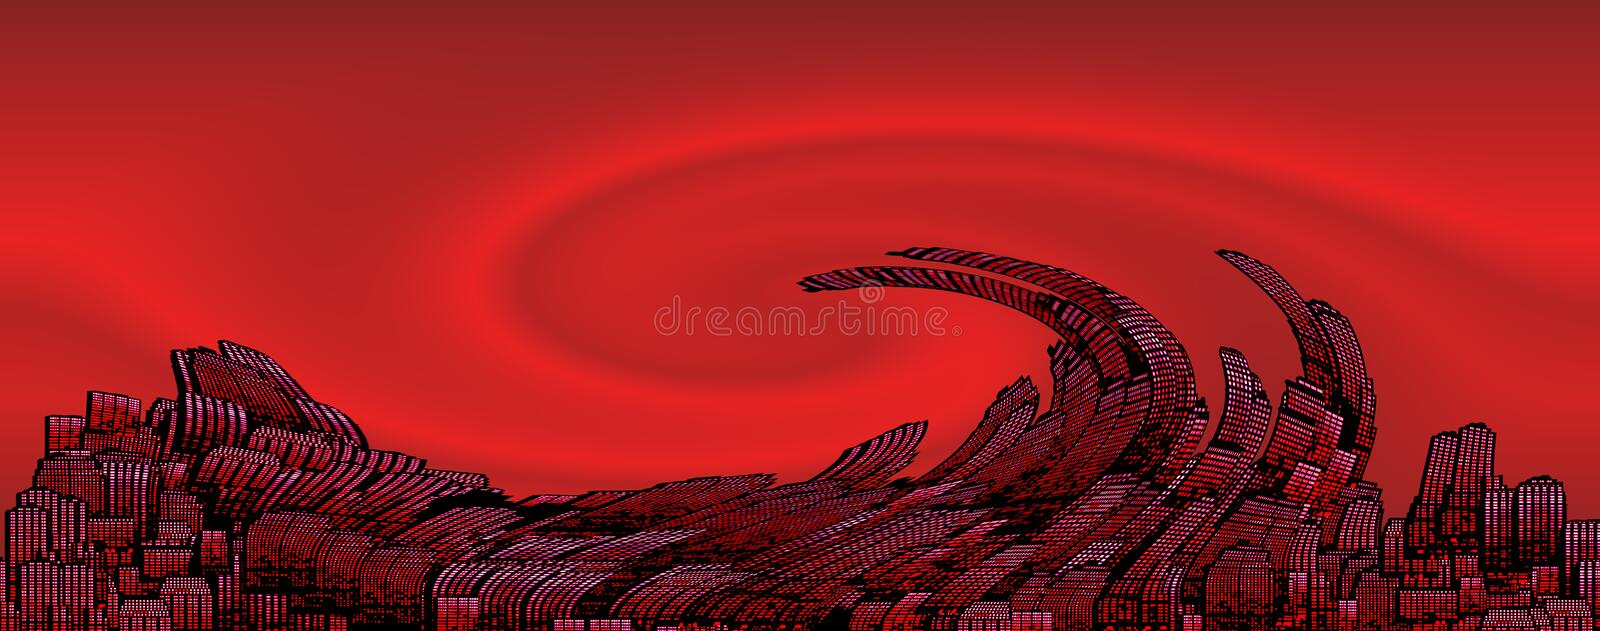 Download In The Red/collapse Stock Images - Image: 4836414